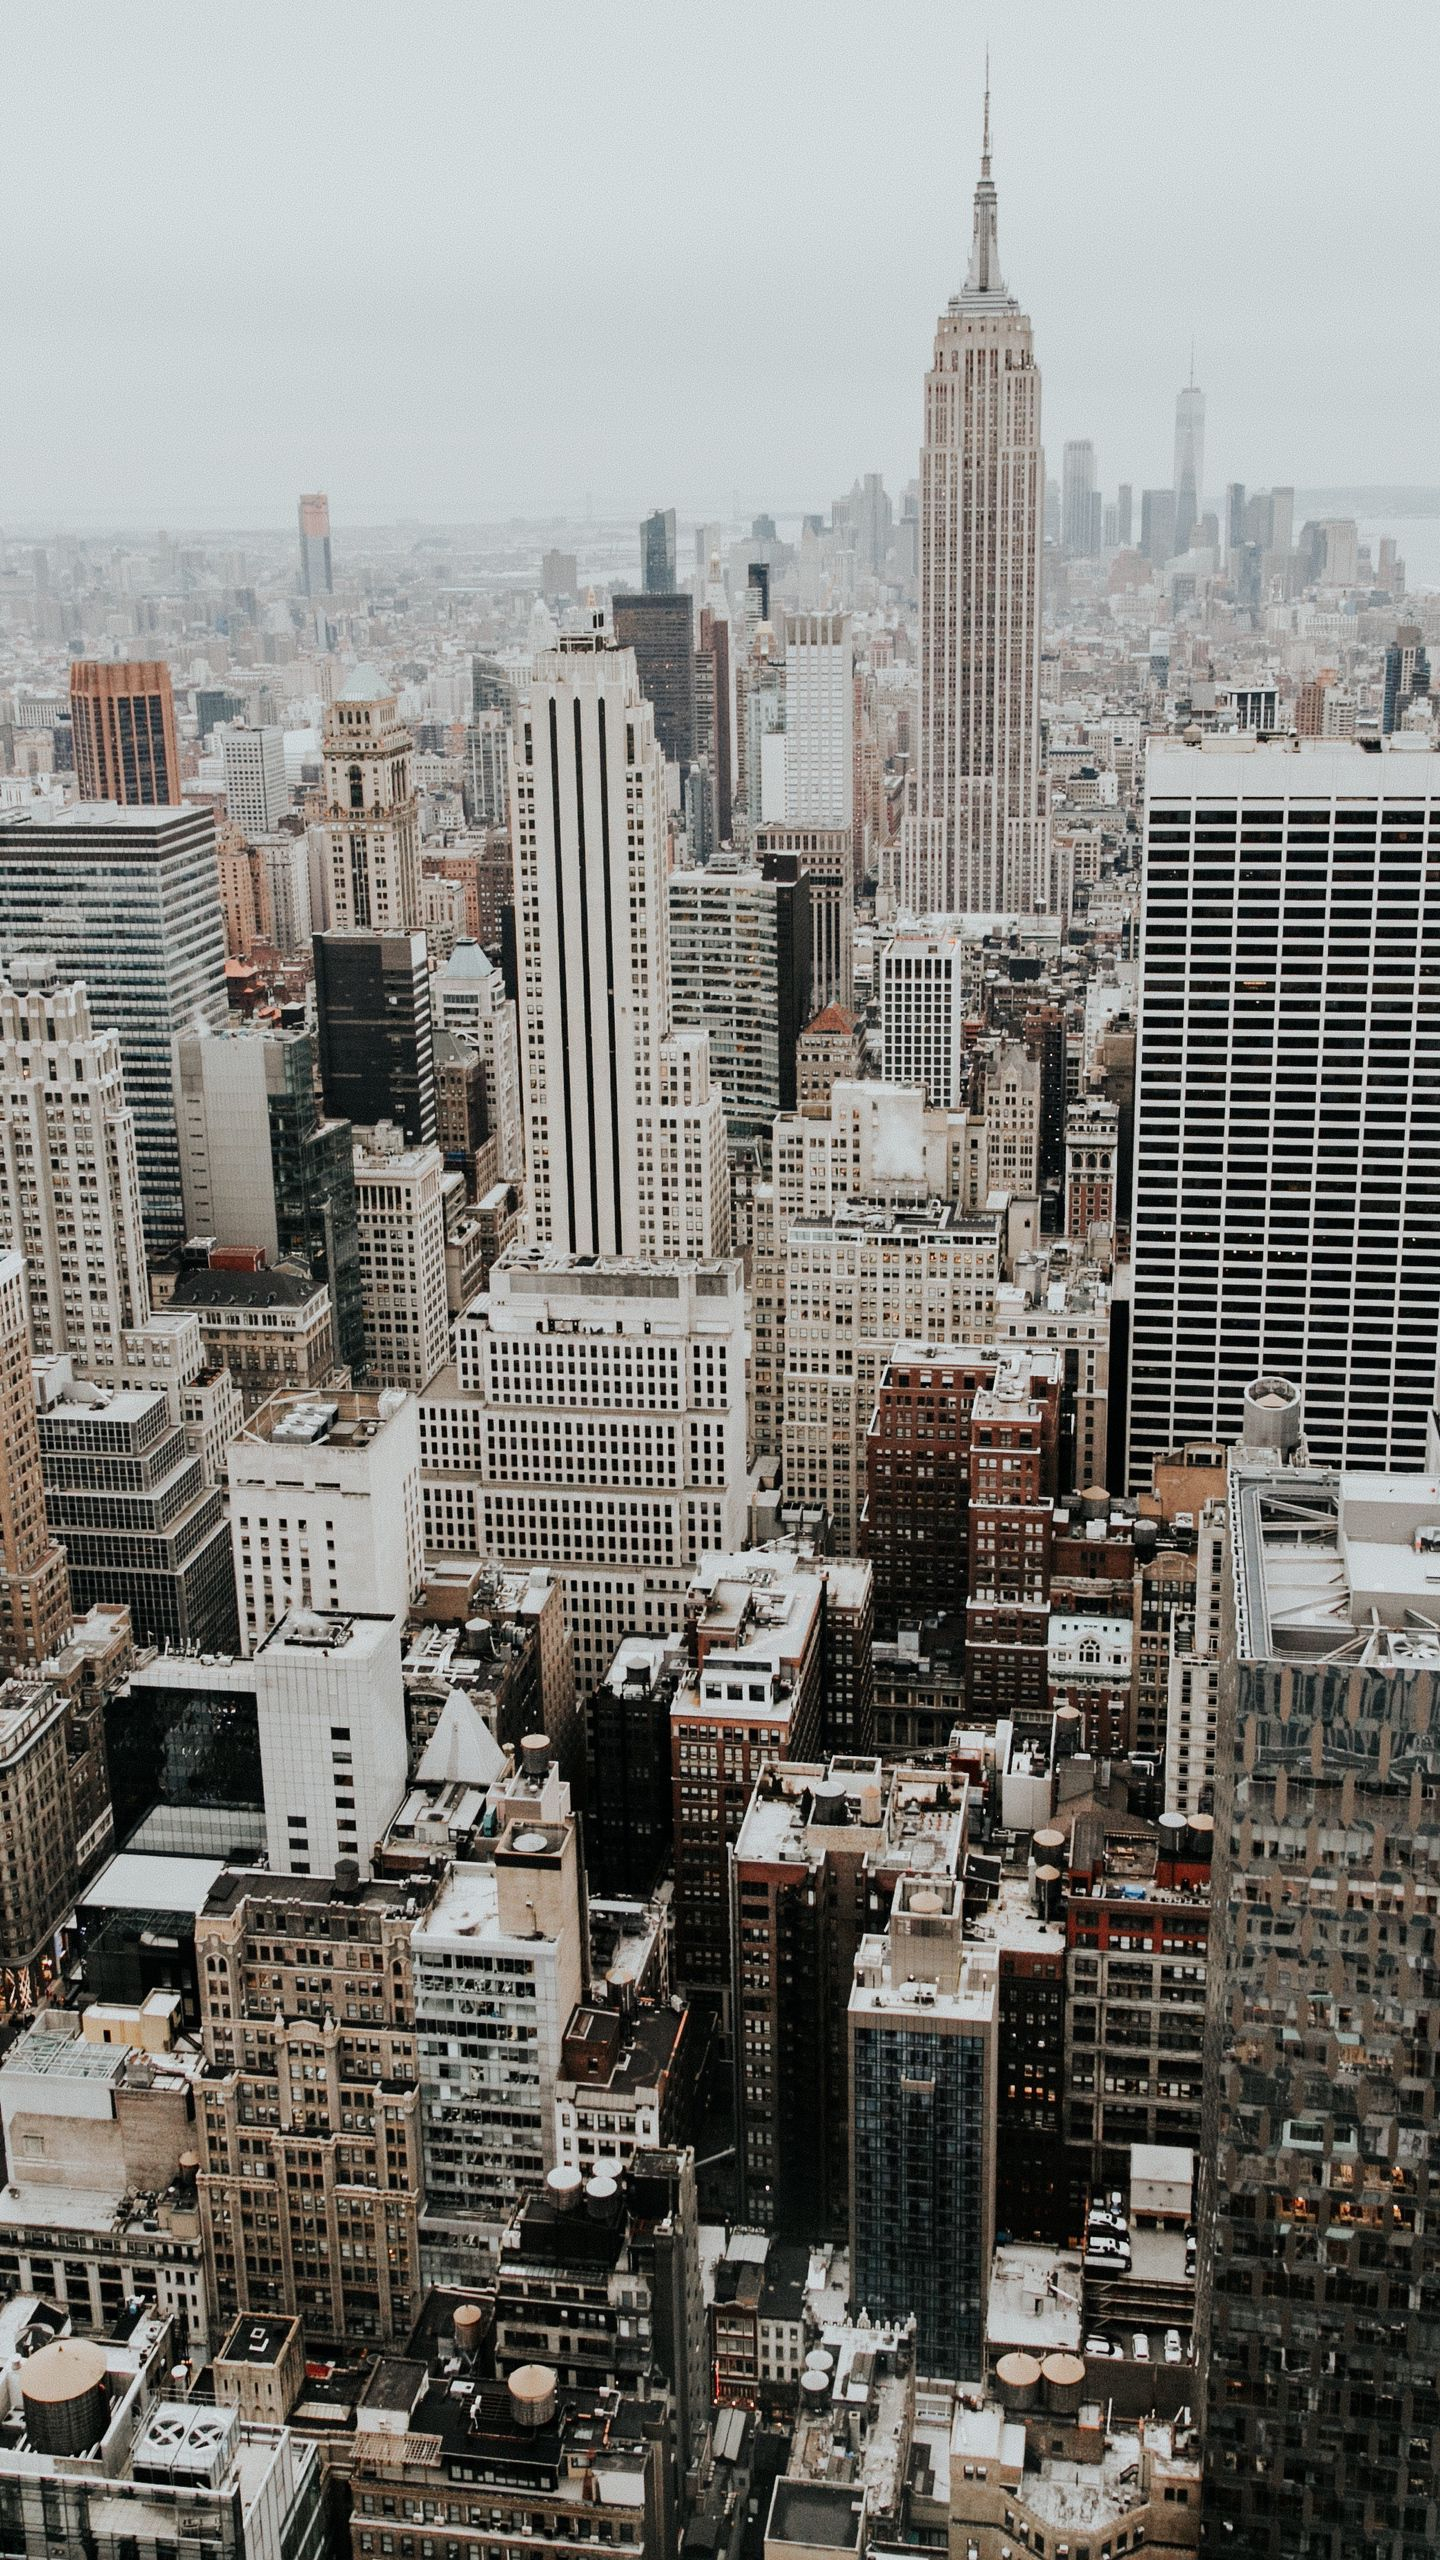 See My Collection Of Awesome Iphone And Android Building Wallpapers And Background Images In Ultra High Defini New York Wallpaper York Wallpaper City Wallpaper